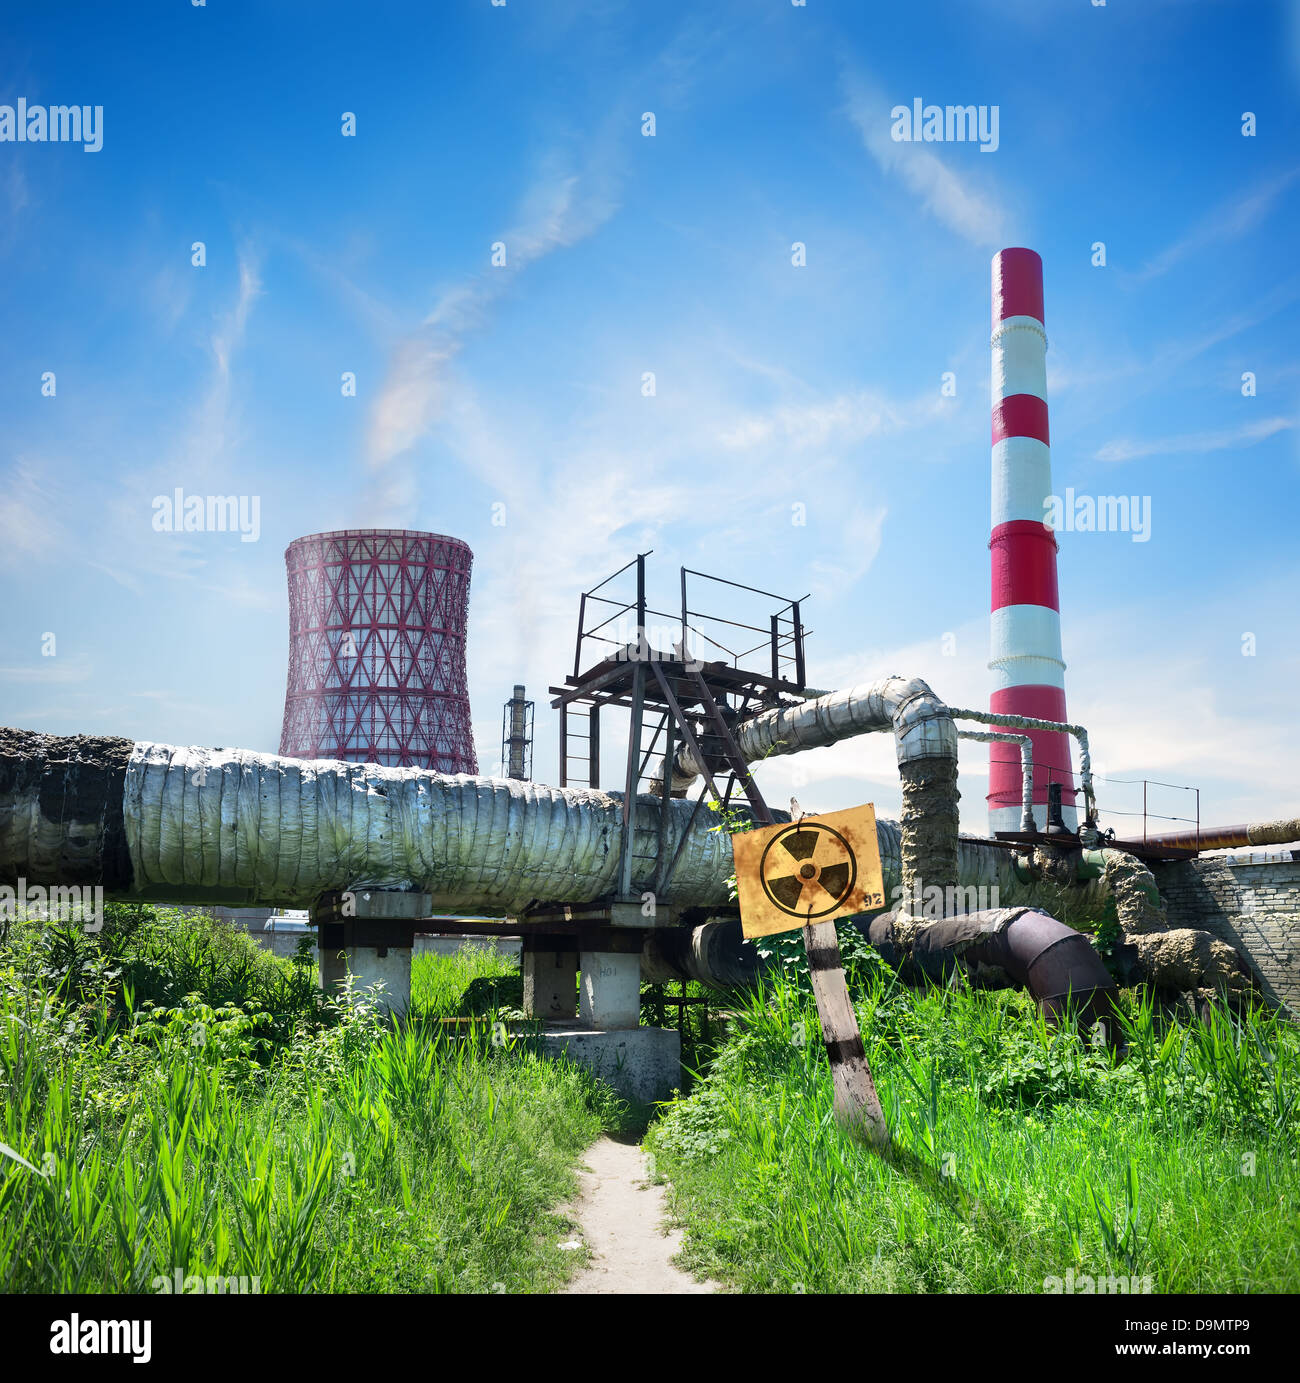 Nuclear reactor and smoke stack in afternoon - Stock Image